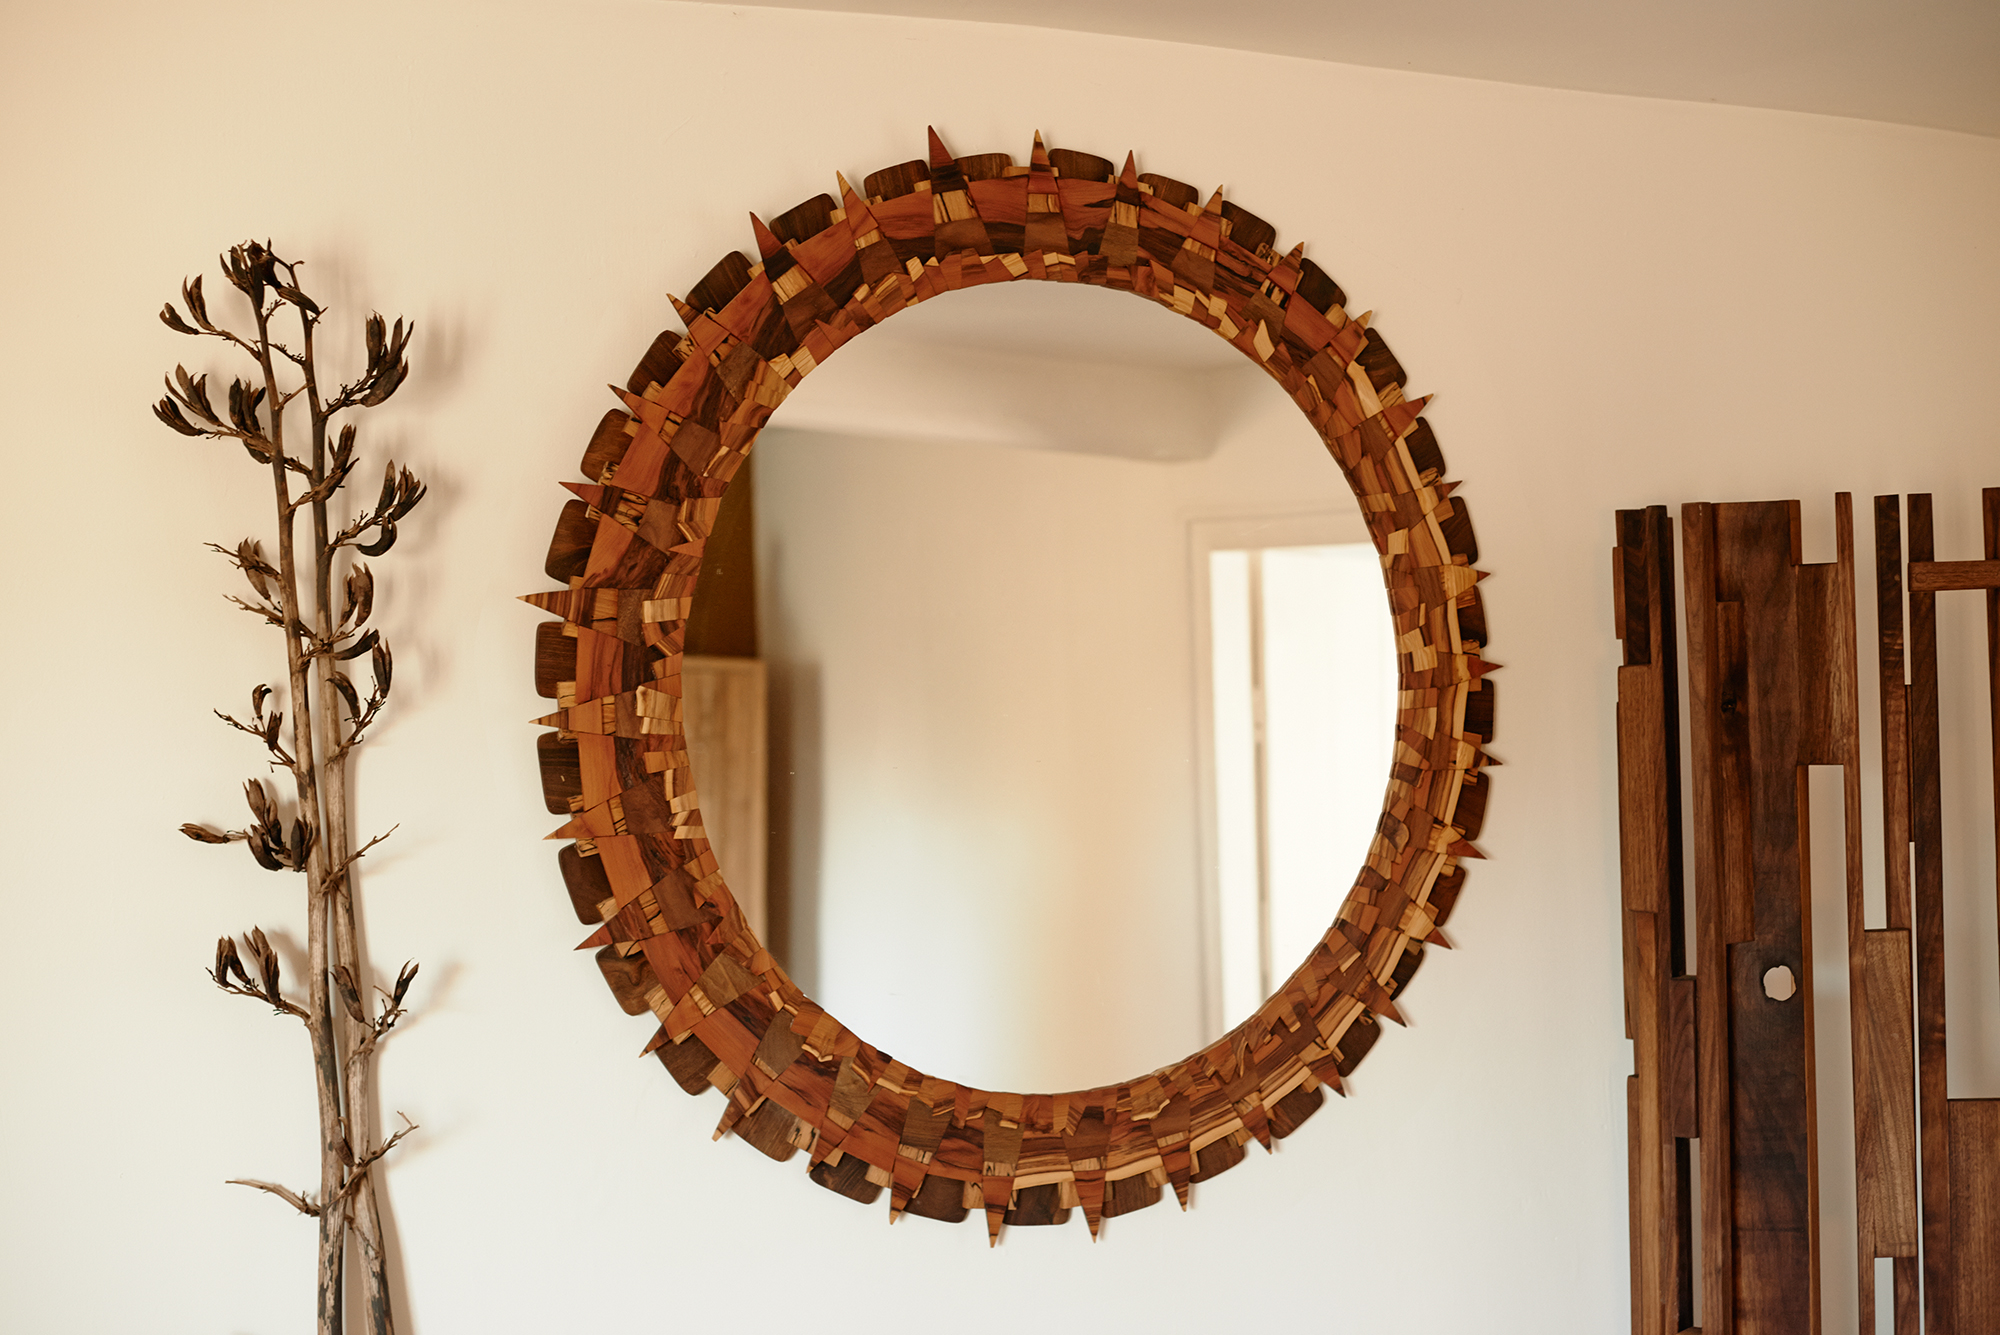 Chaotic Mirror